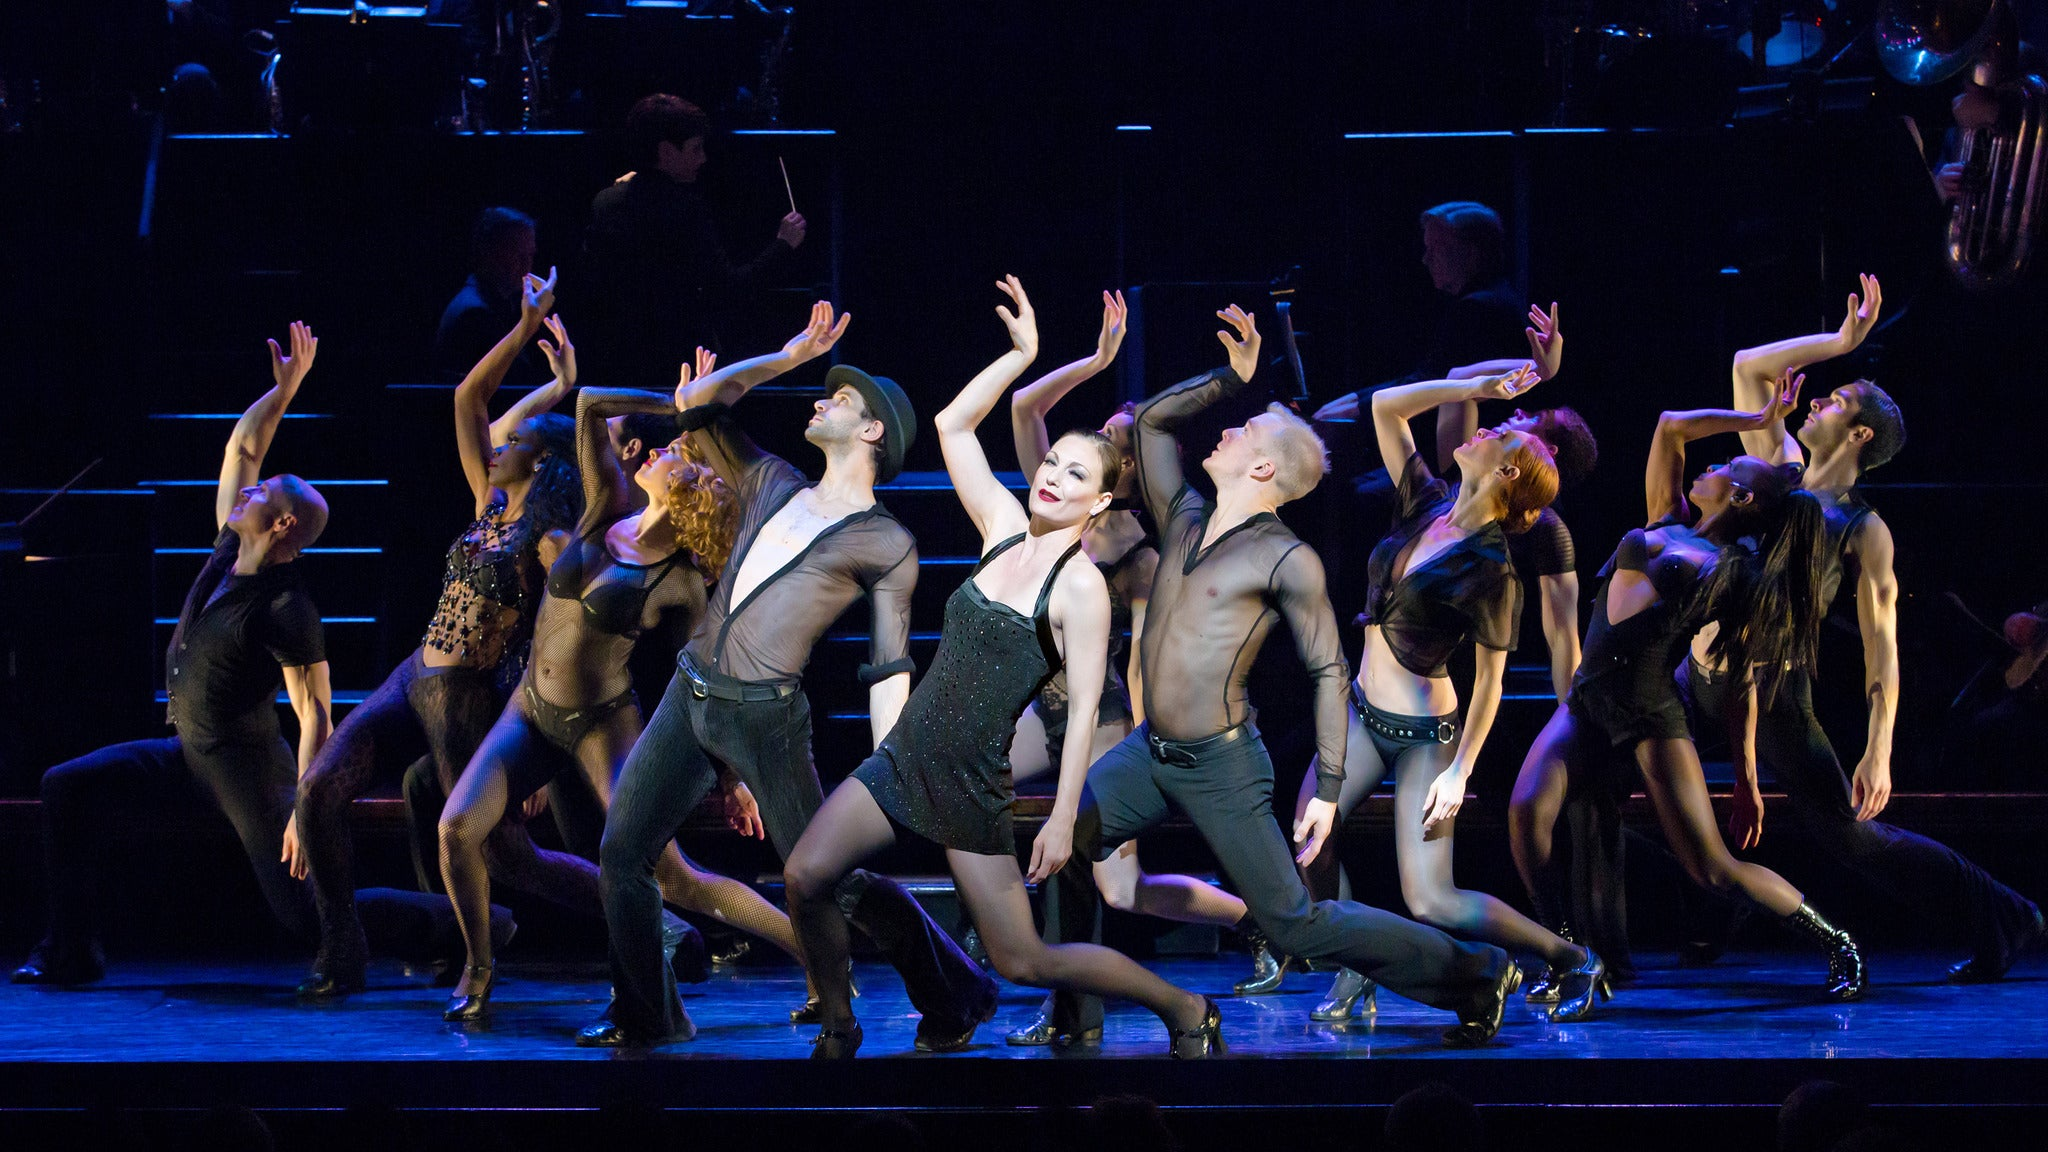 Chicago the Musical (Chicago) at Cadillac Palace